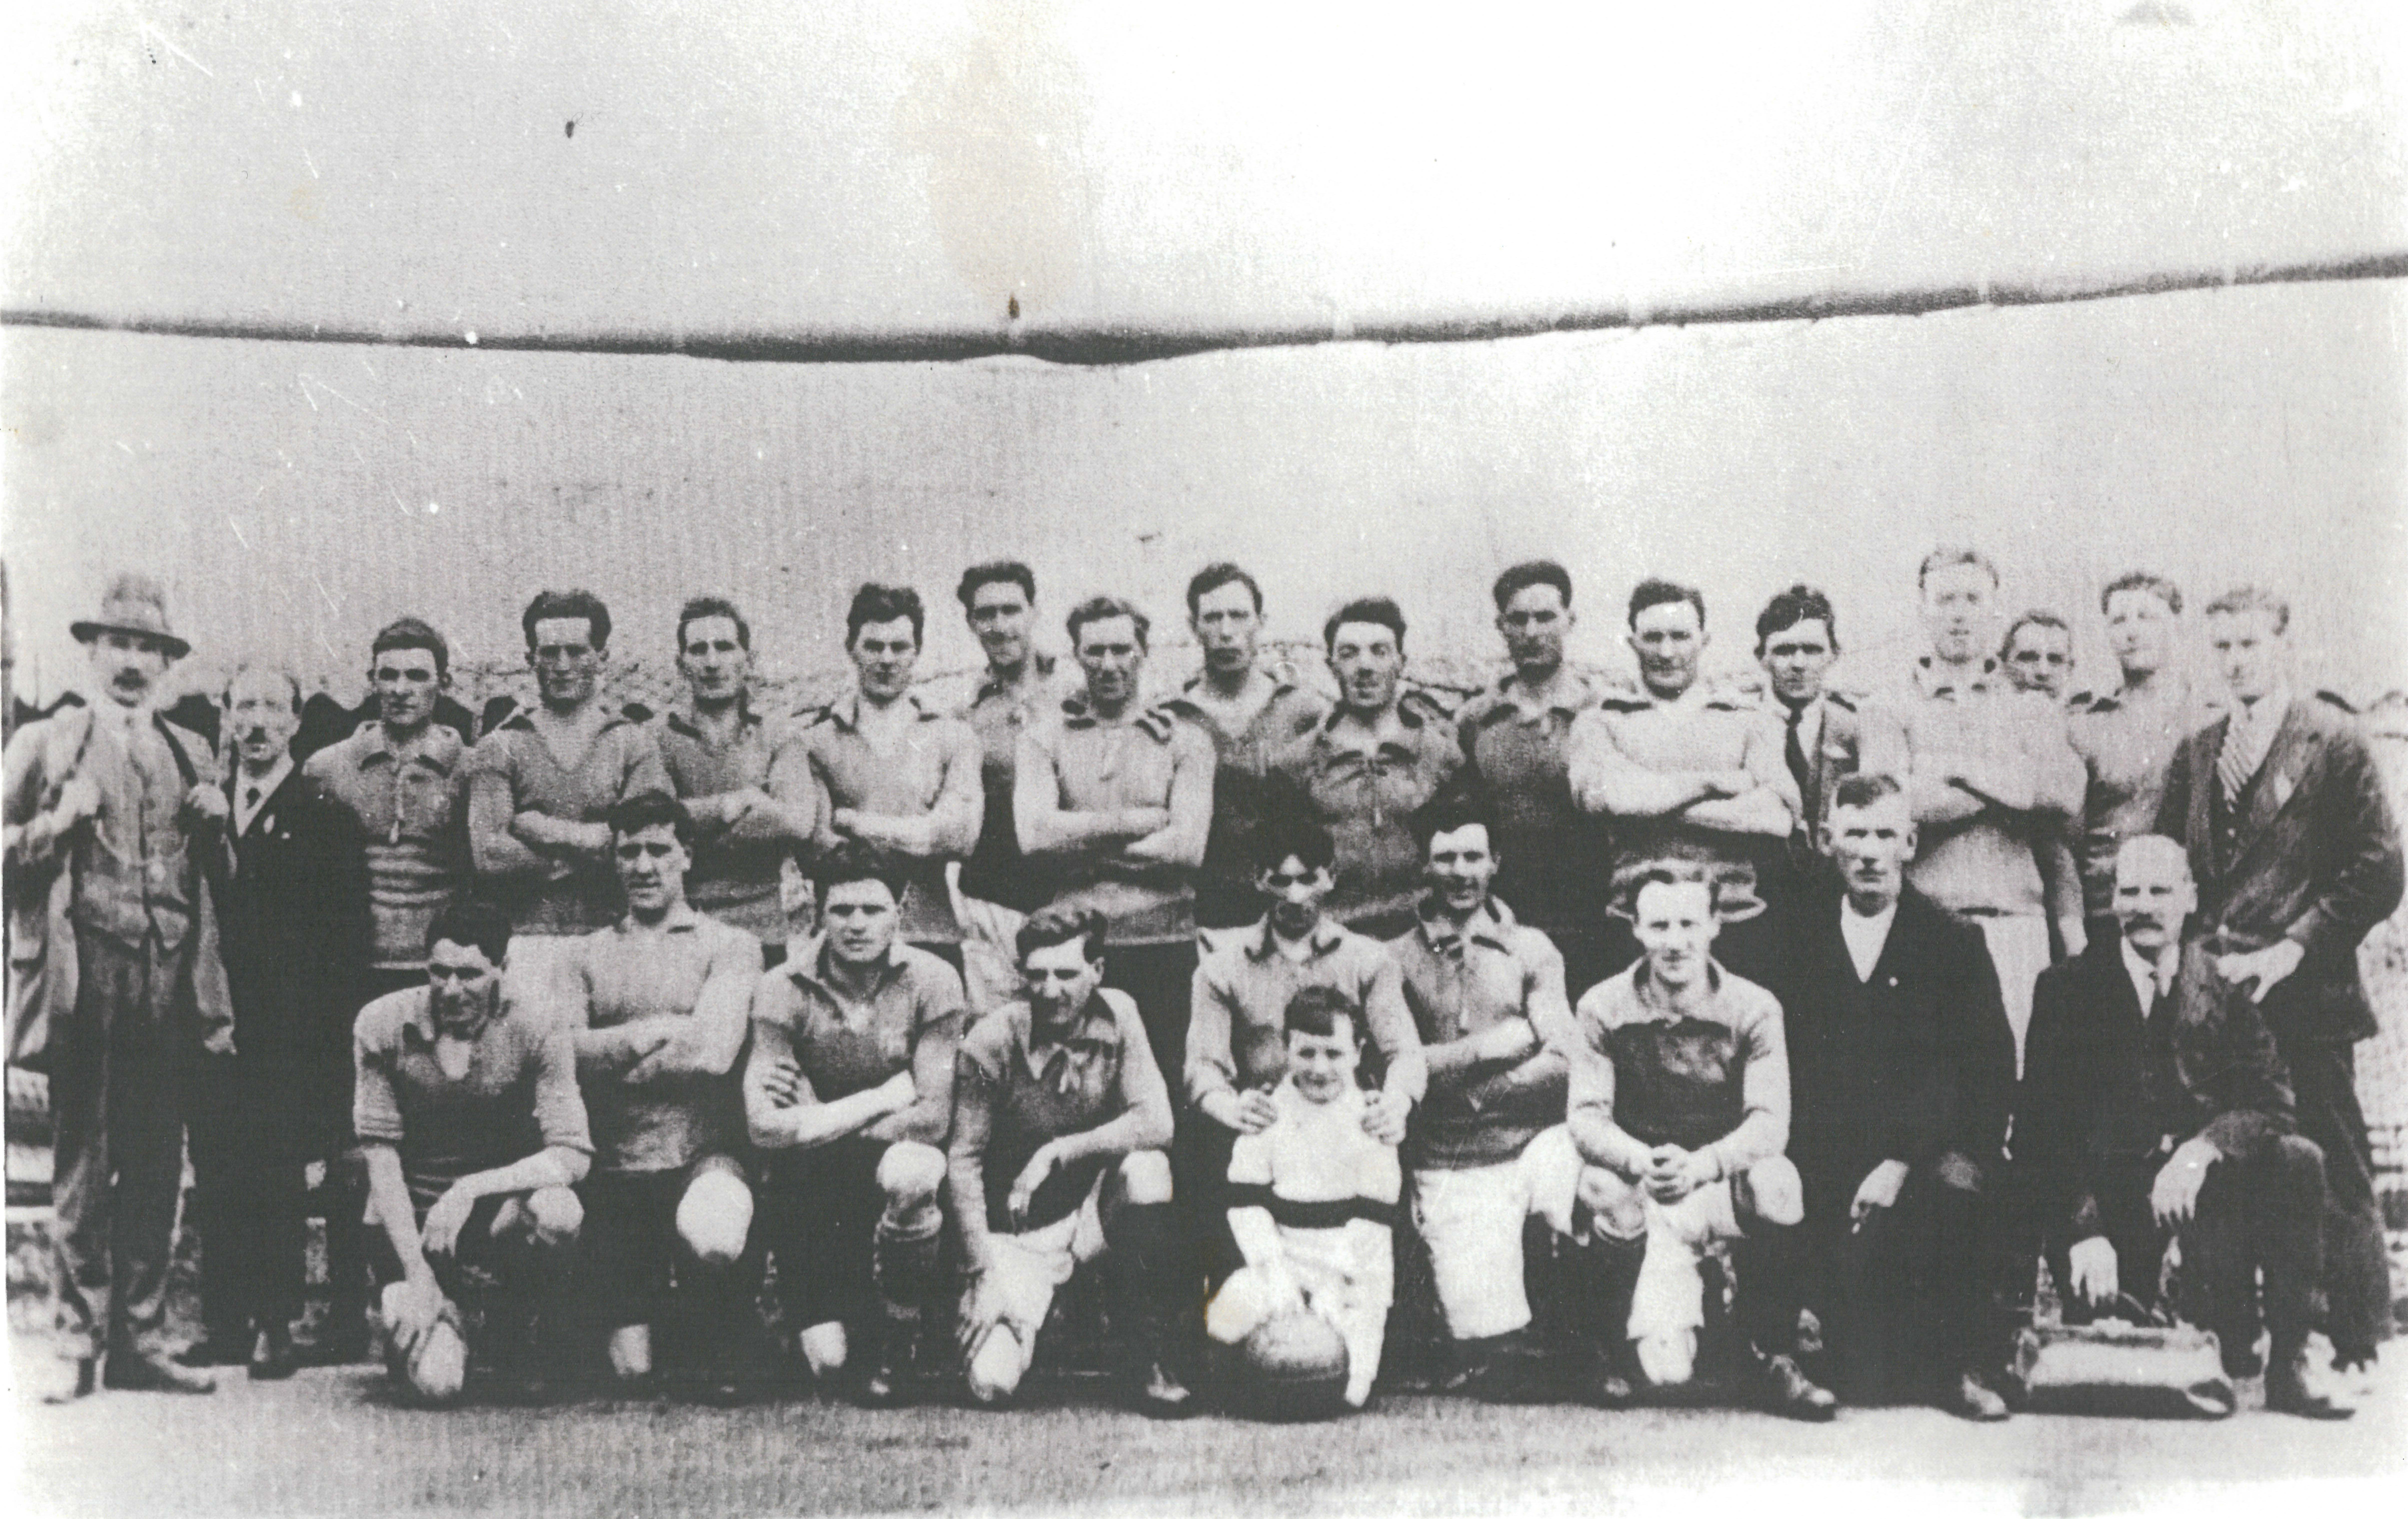 Dublin (St Mary's) 1921 Football All-Ireland Champions